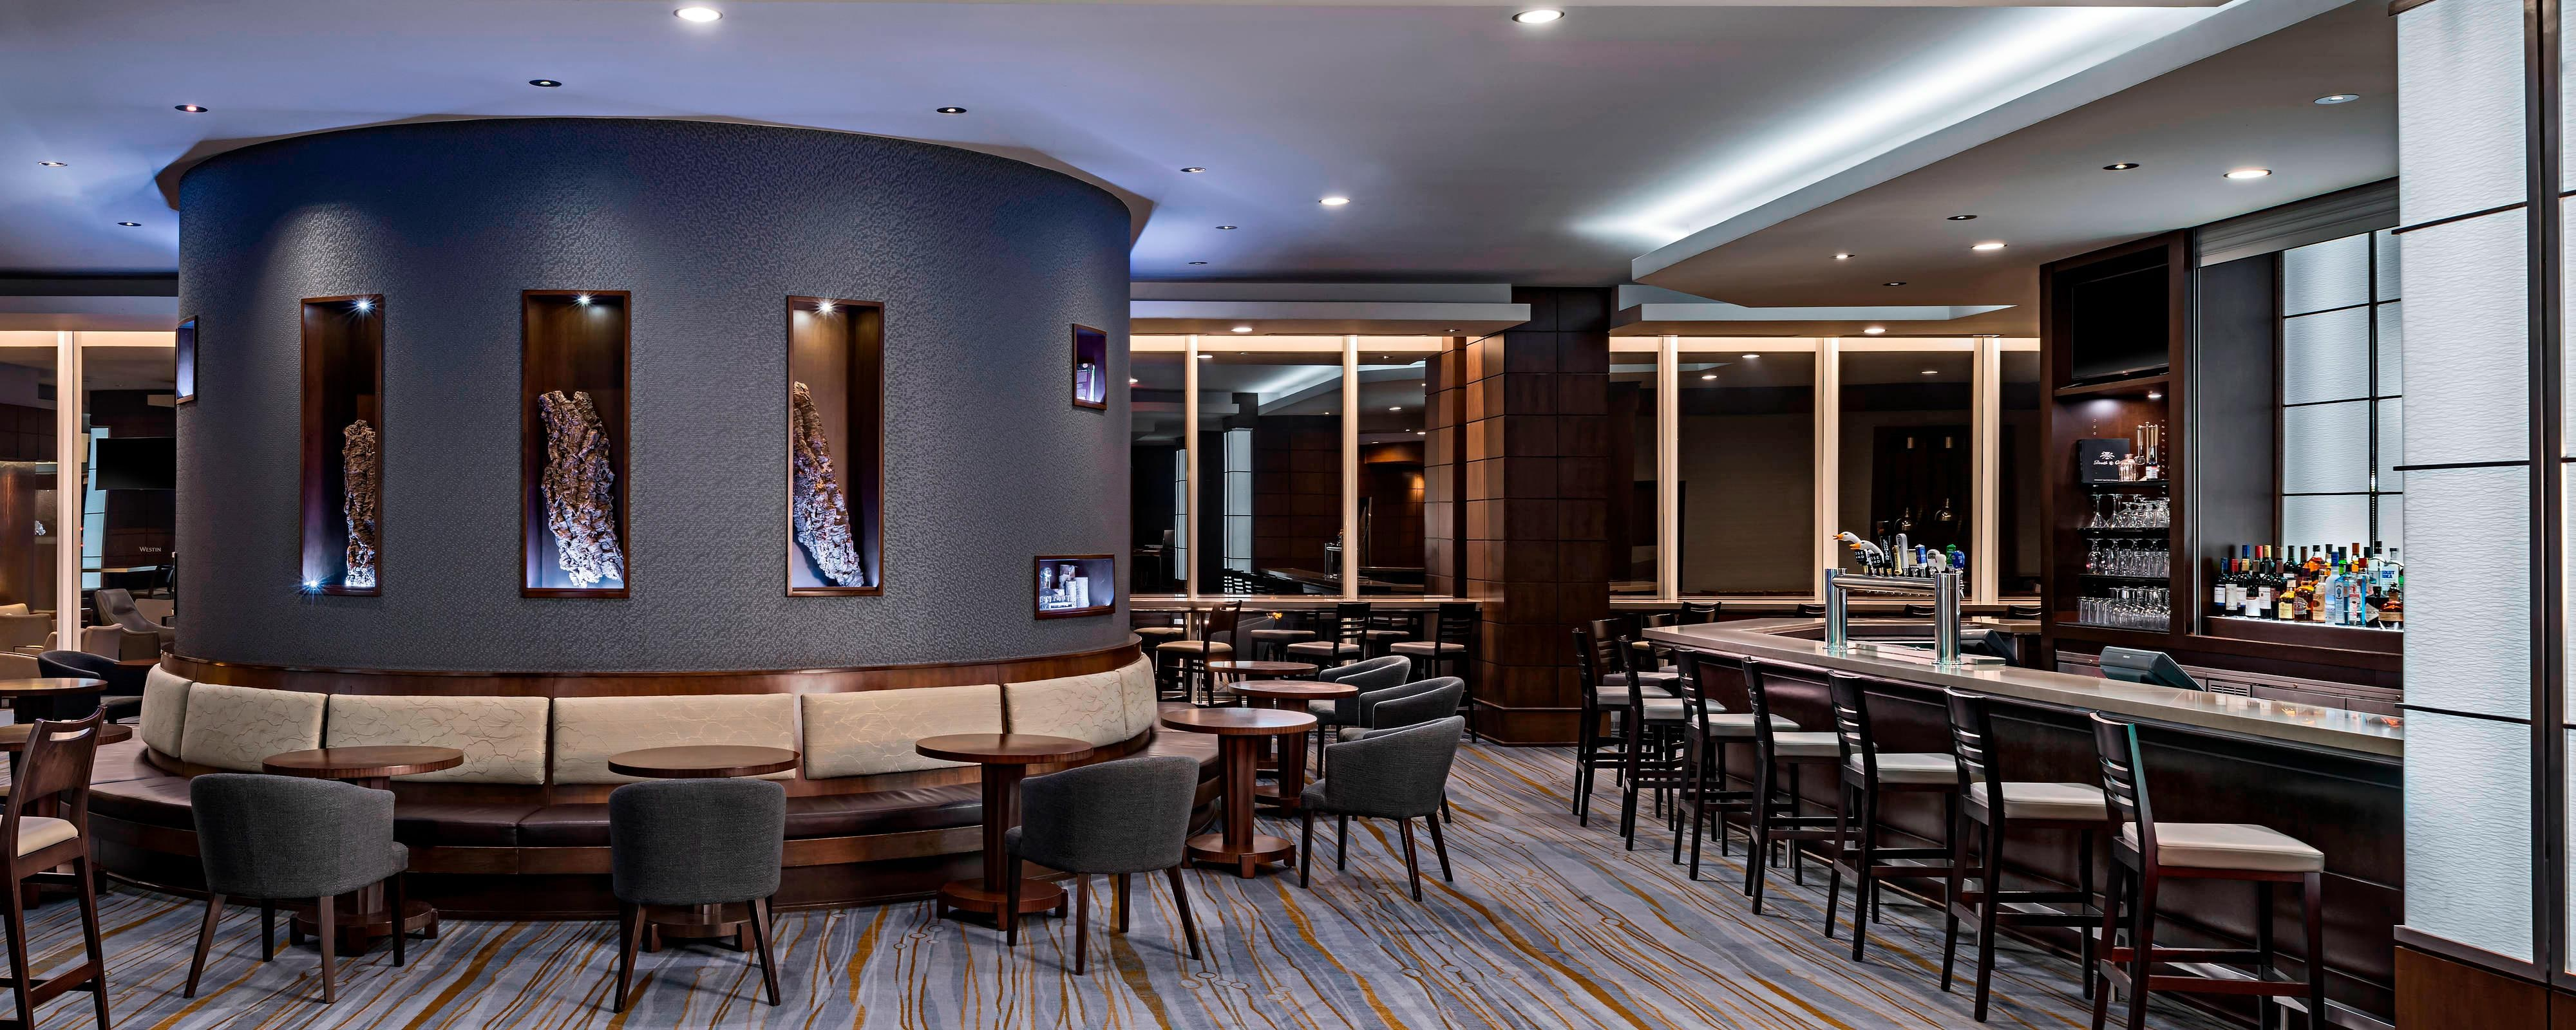 Groovy Harbourfront Restaurants Toronto The Westin Harbour Castle Interior Design Ideas Inamawefileorg